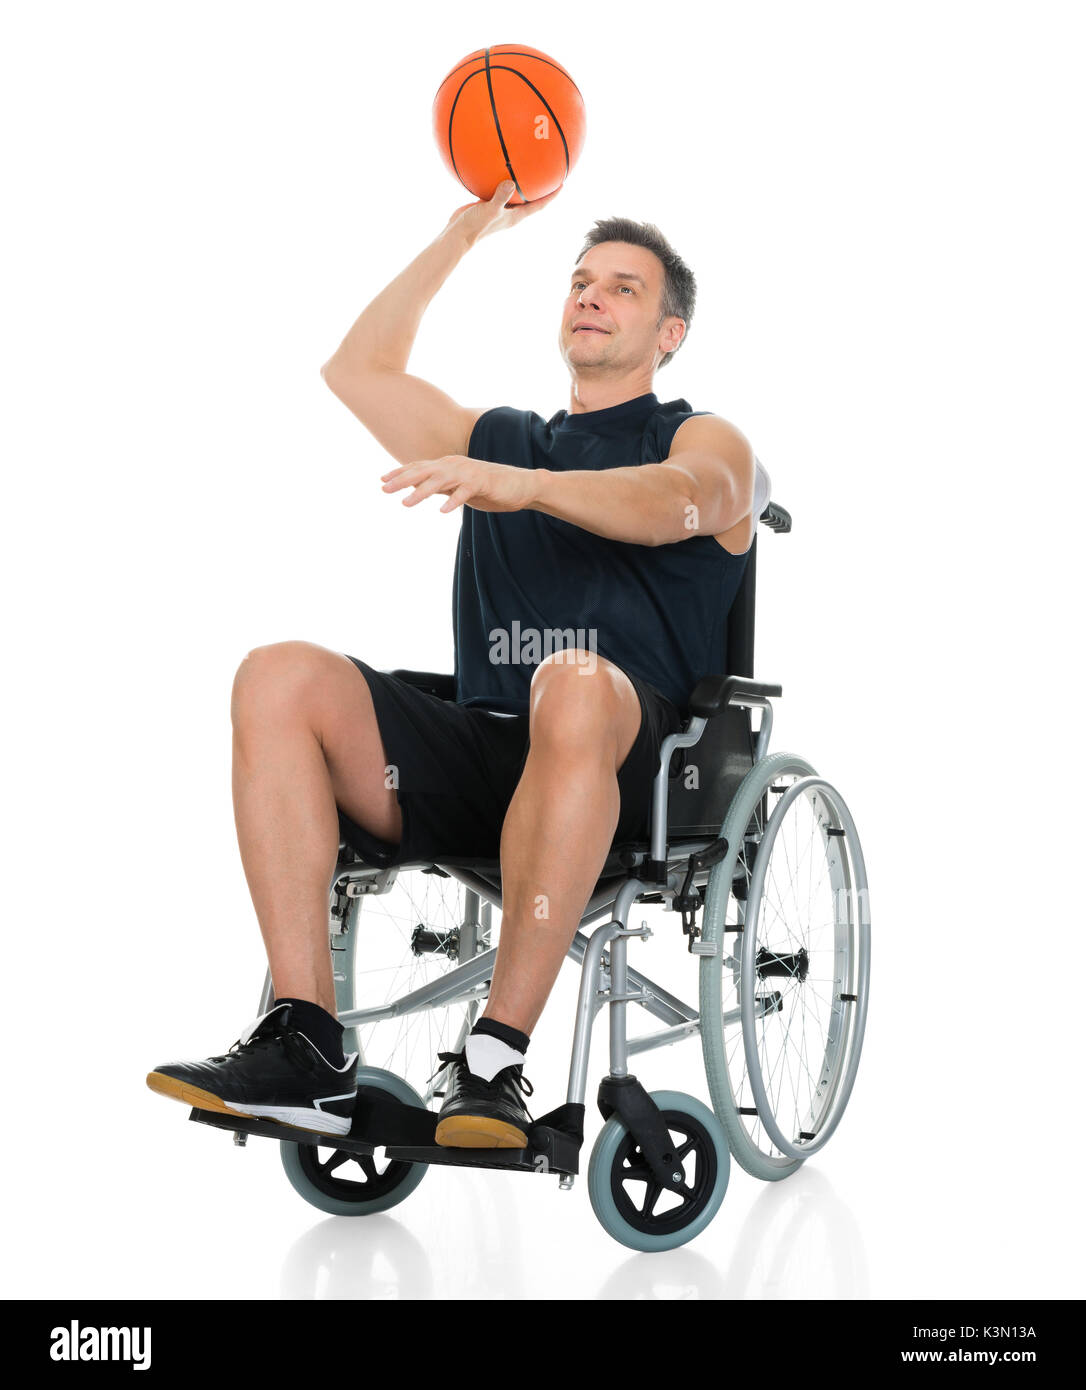 Handicapped Basketball Player On Wheelchair Throwing Ball Over White Background - Stock Image